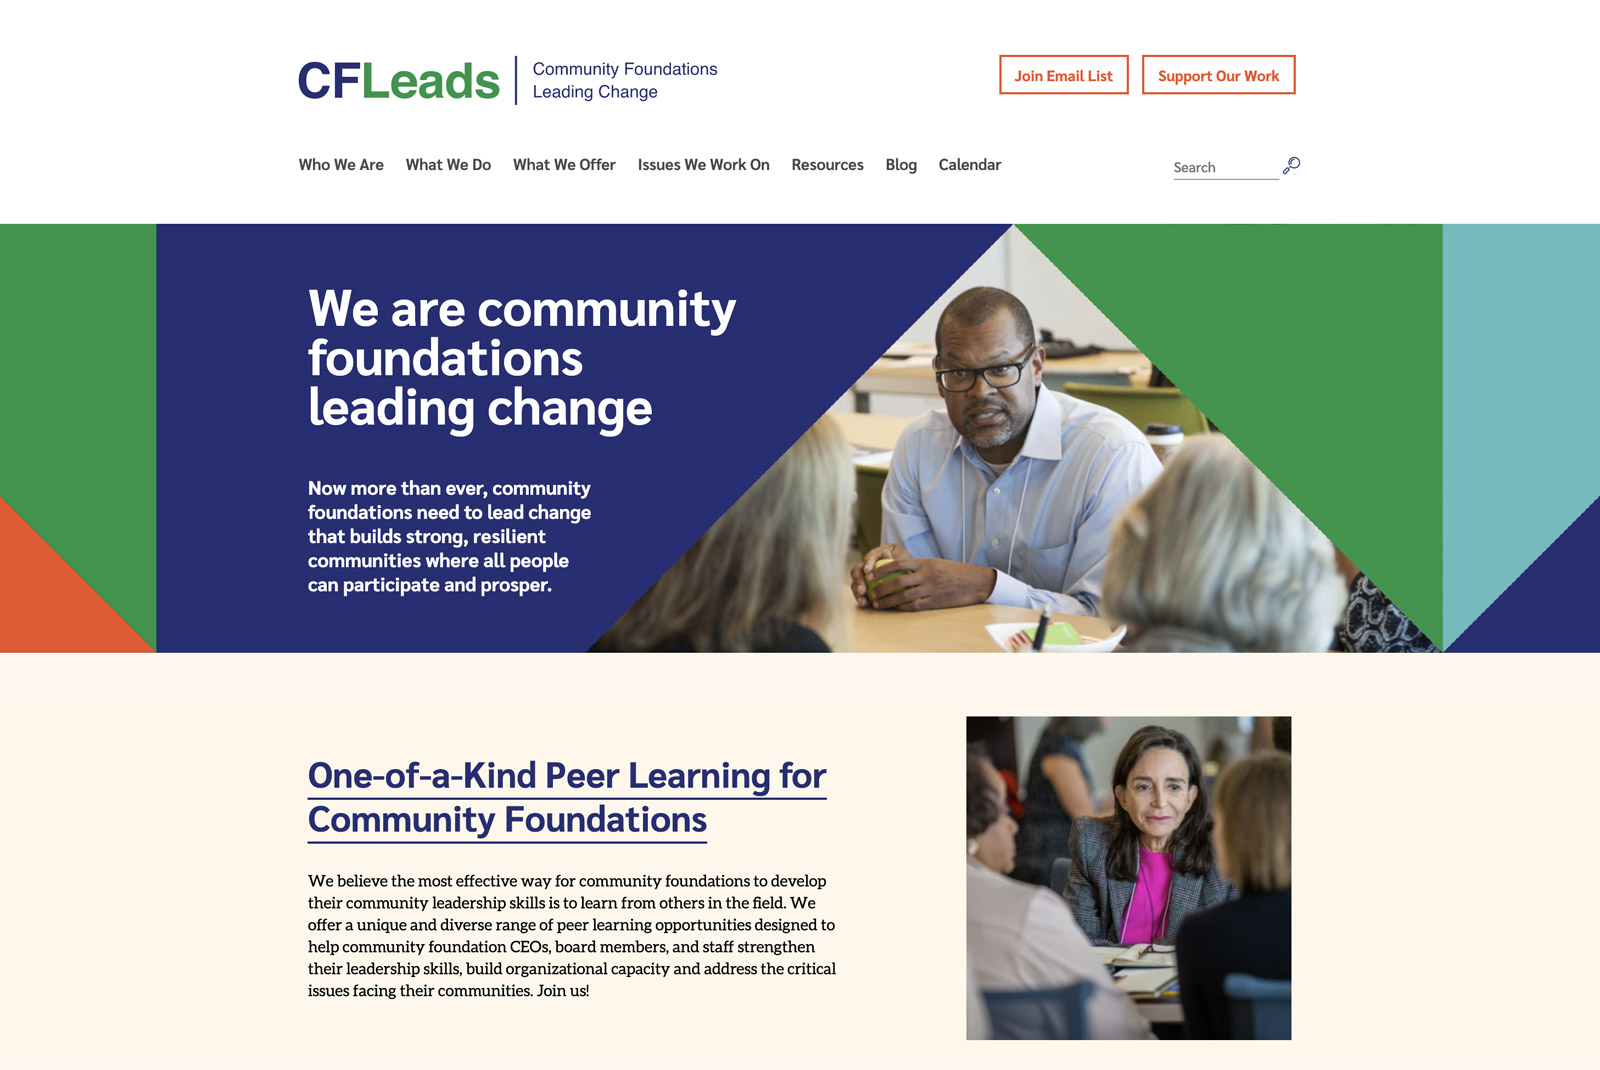 We are community foundations leading change Now more than ever, community foundations need to lead change that builds strong, resilient communities where all people can participate and prosper.